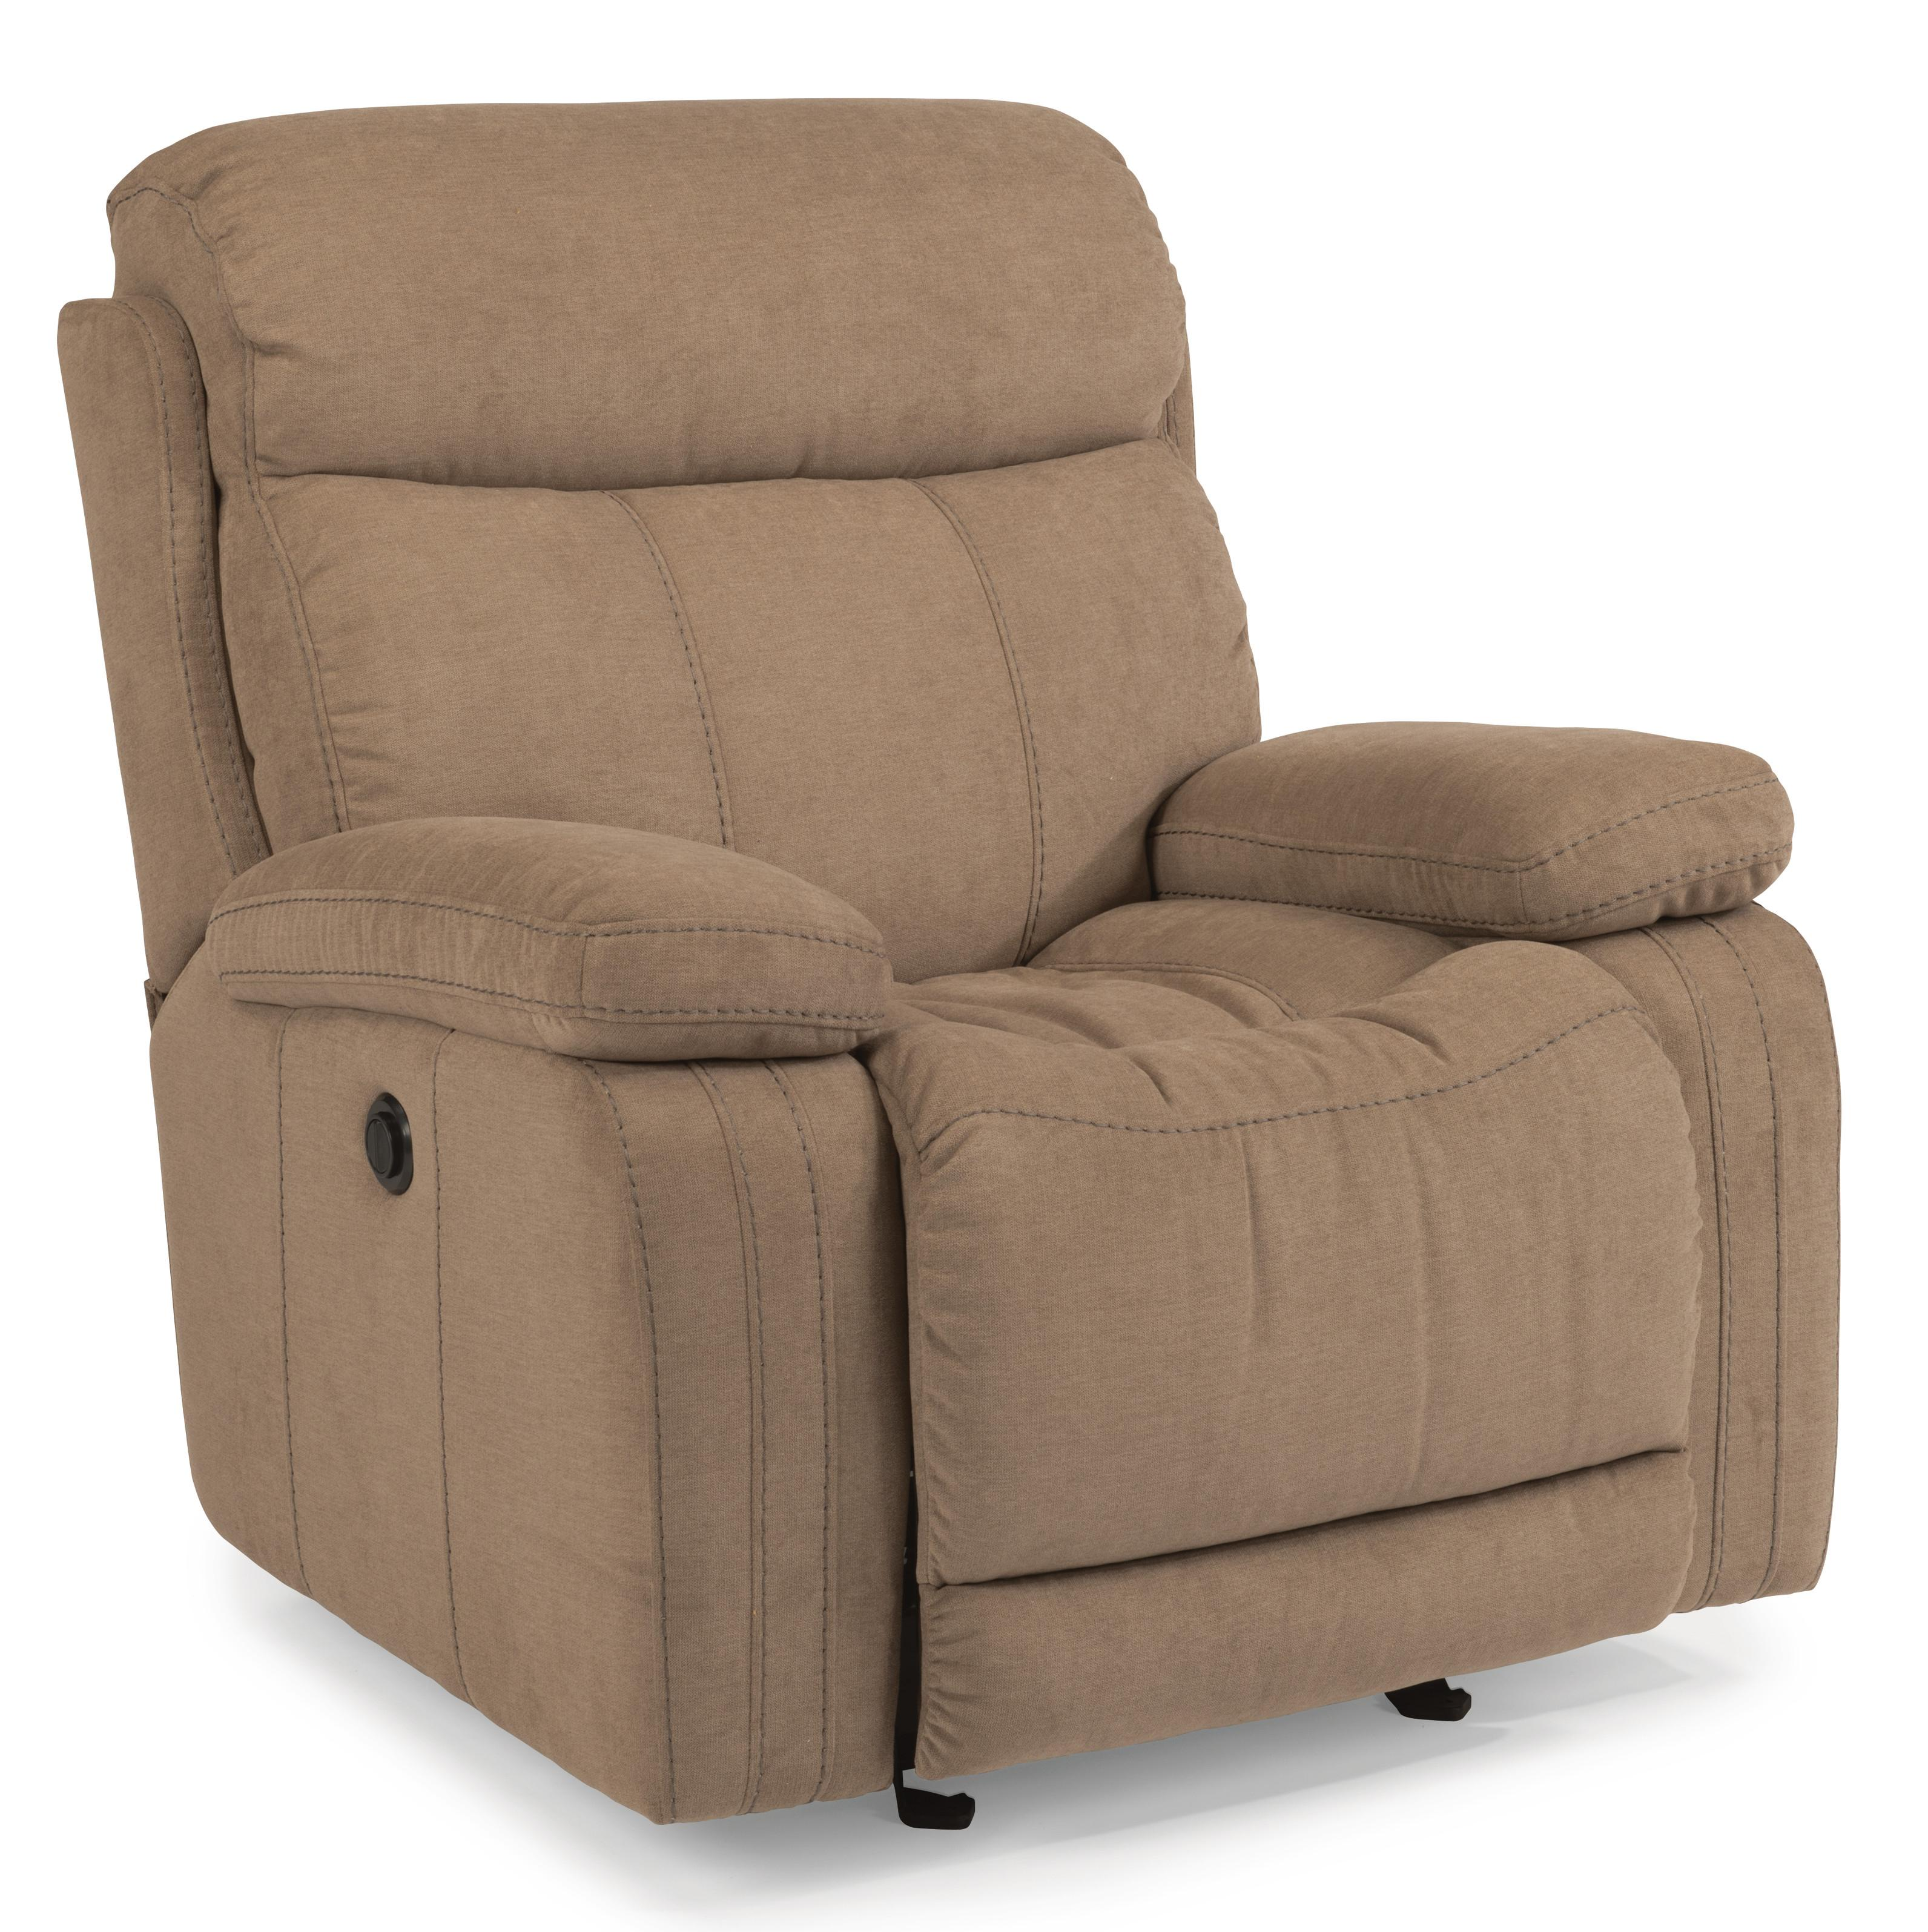 Flexsteel Latitudes-Danika Glider Recliner with Power - Item Number: 1484-54P-414-01